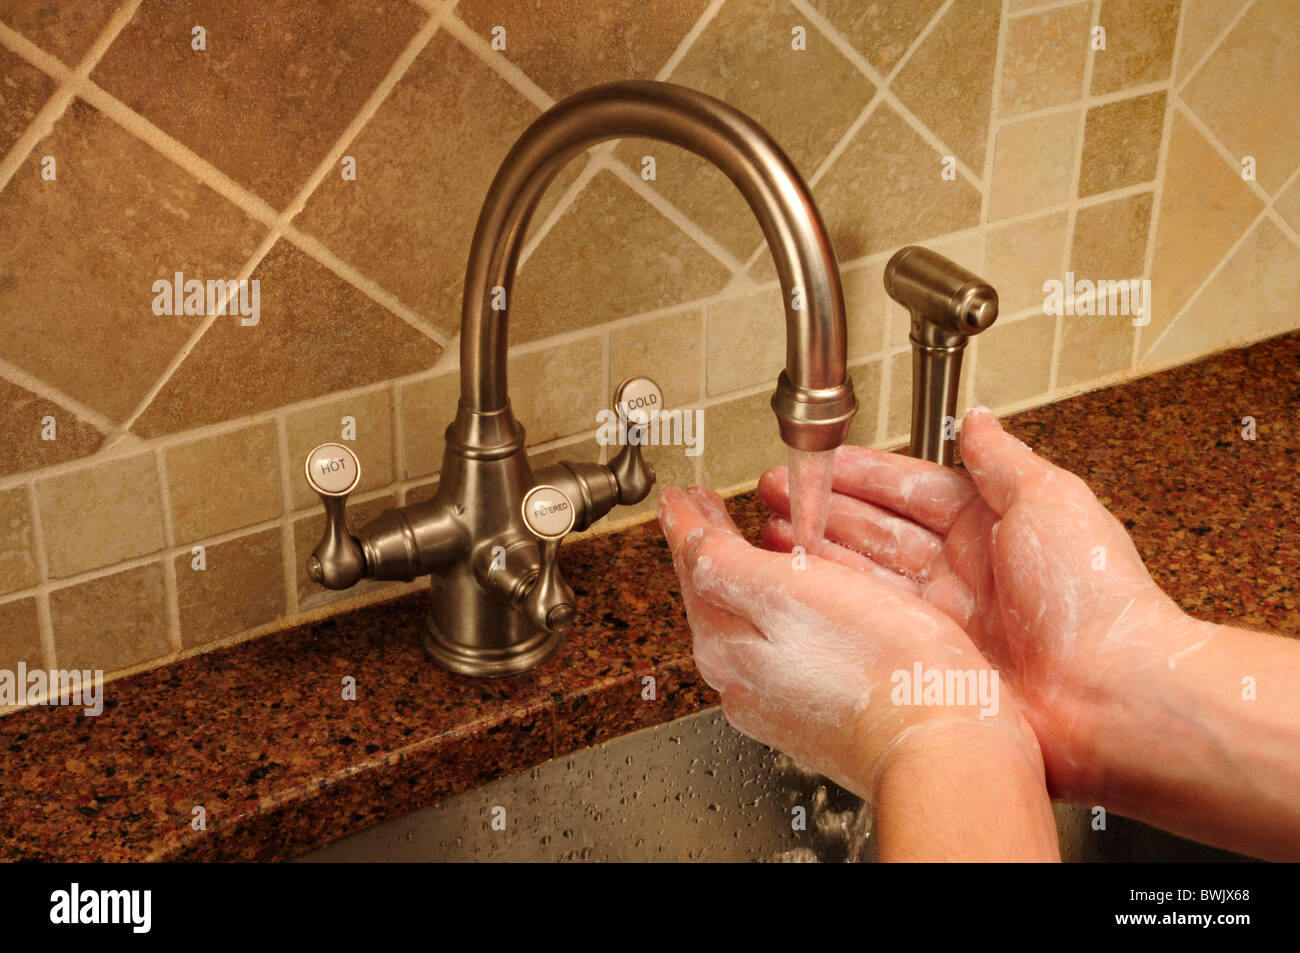 Soapy hand washing under flowing water out of a kitchen faucet - Stock Image